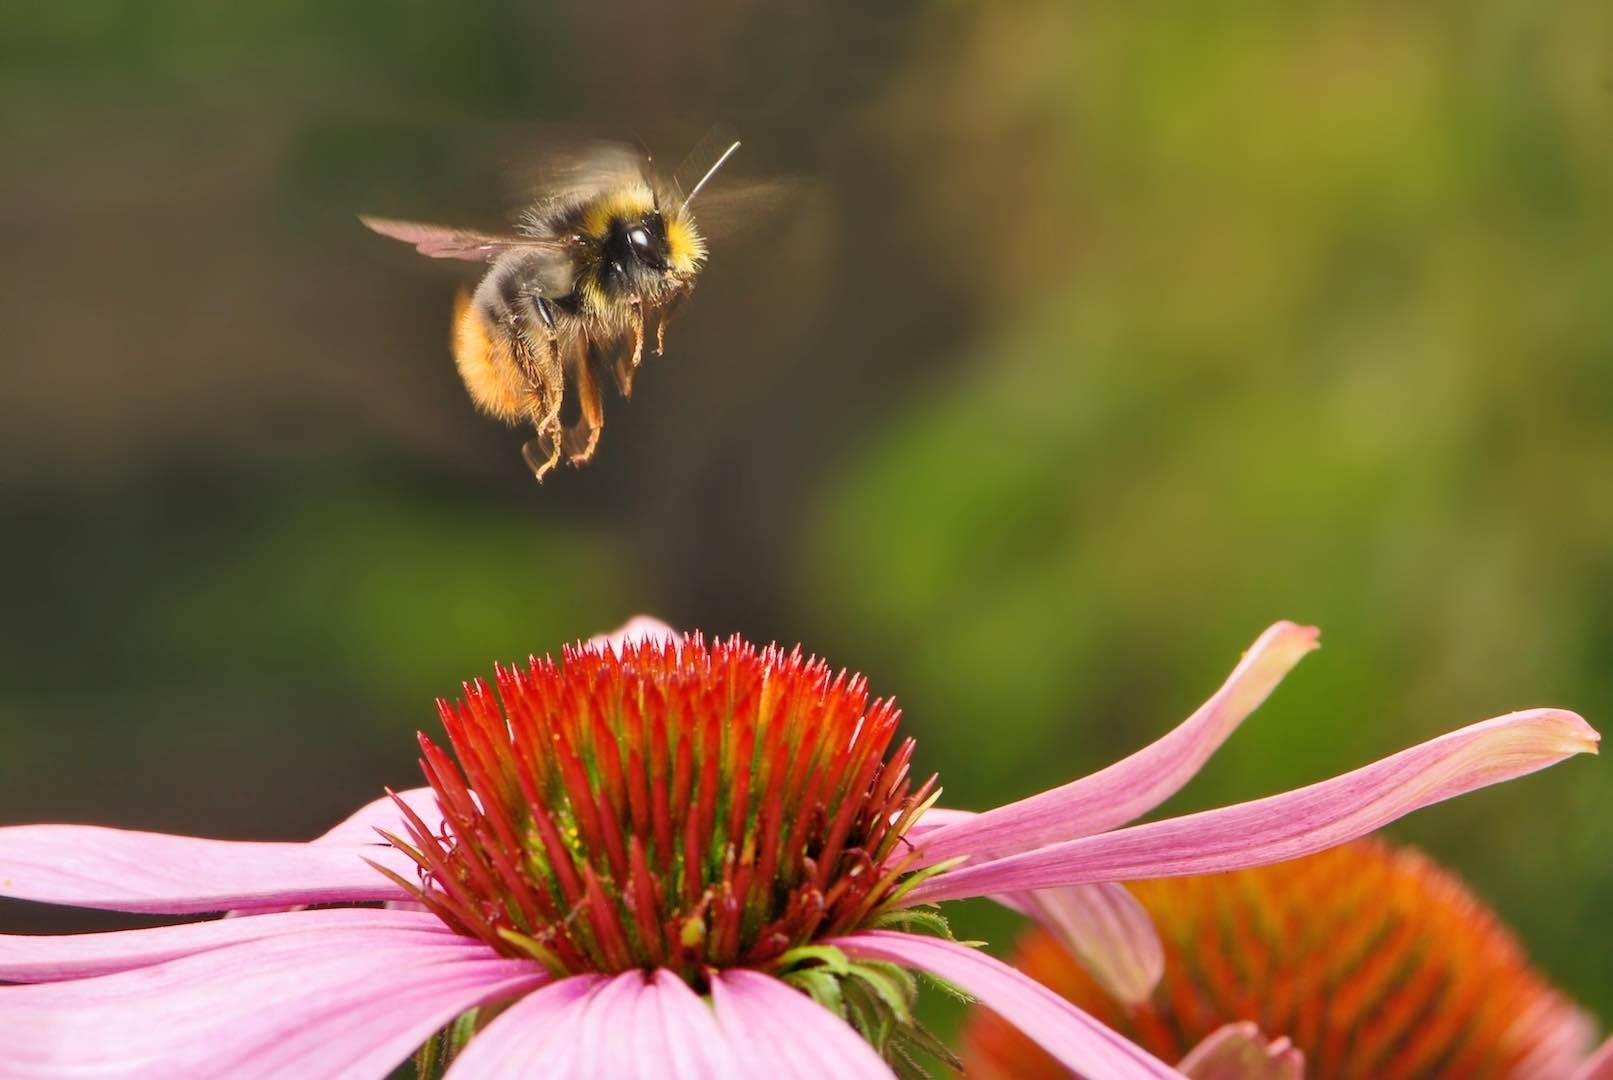 Plant A Bee Garden - The Honeybee Conservancythe Honeybee Conservancy intended for Garden Flowers That Attract Bees